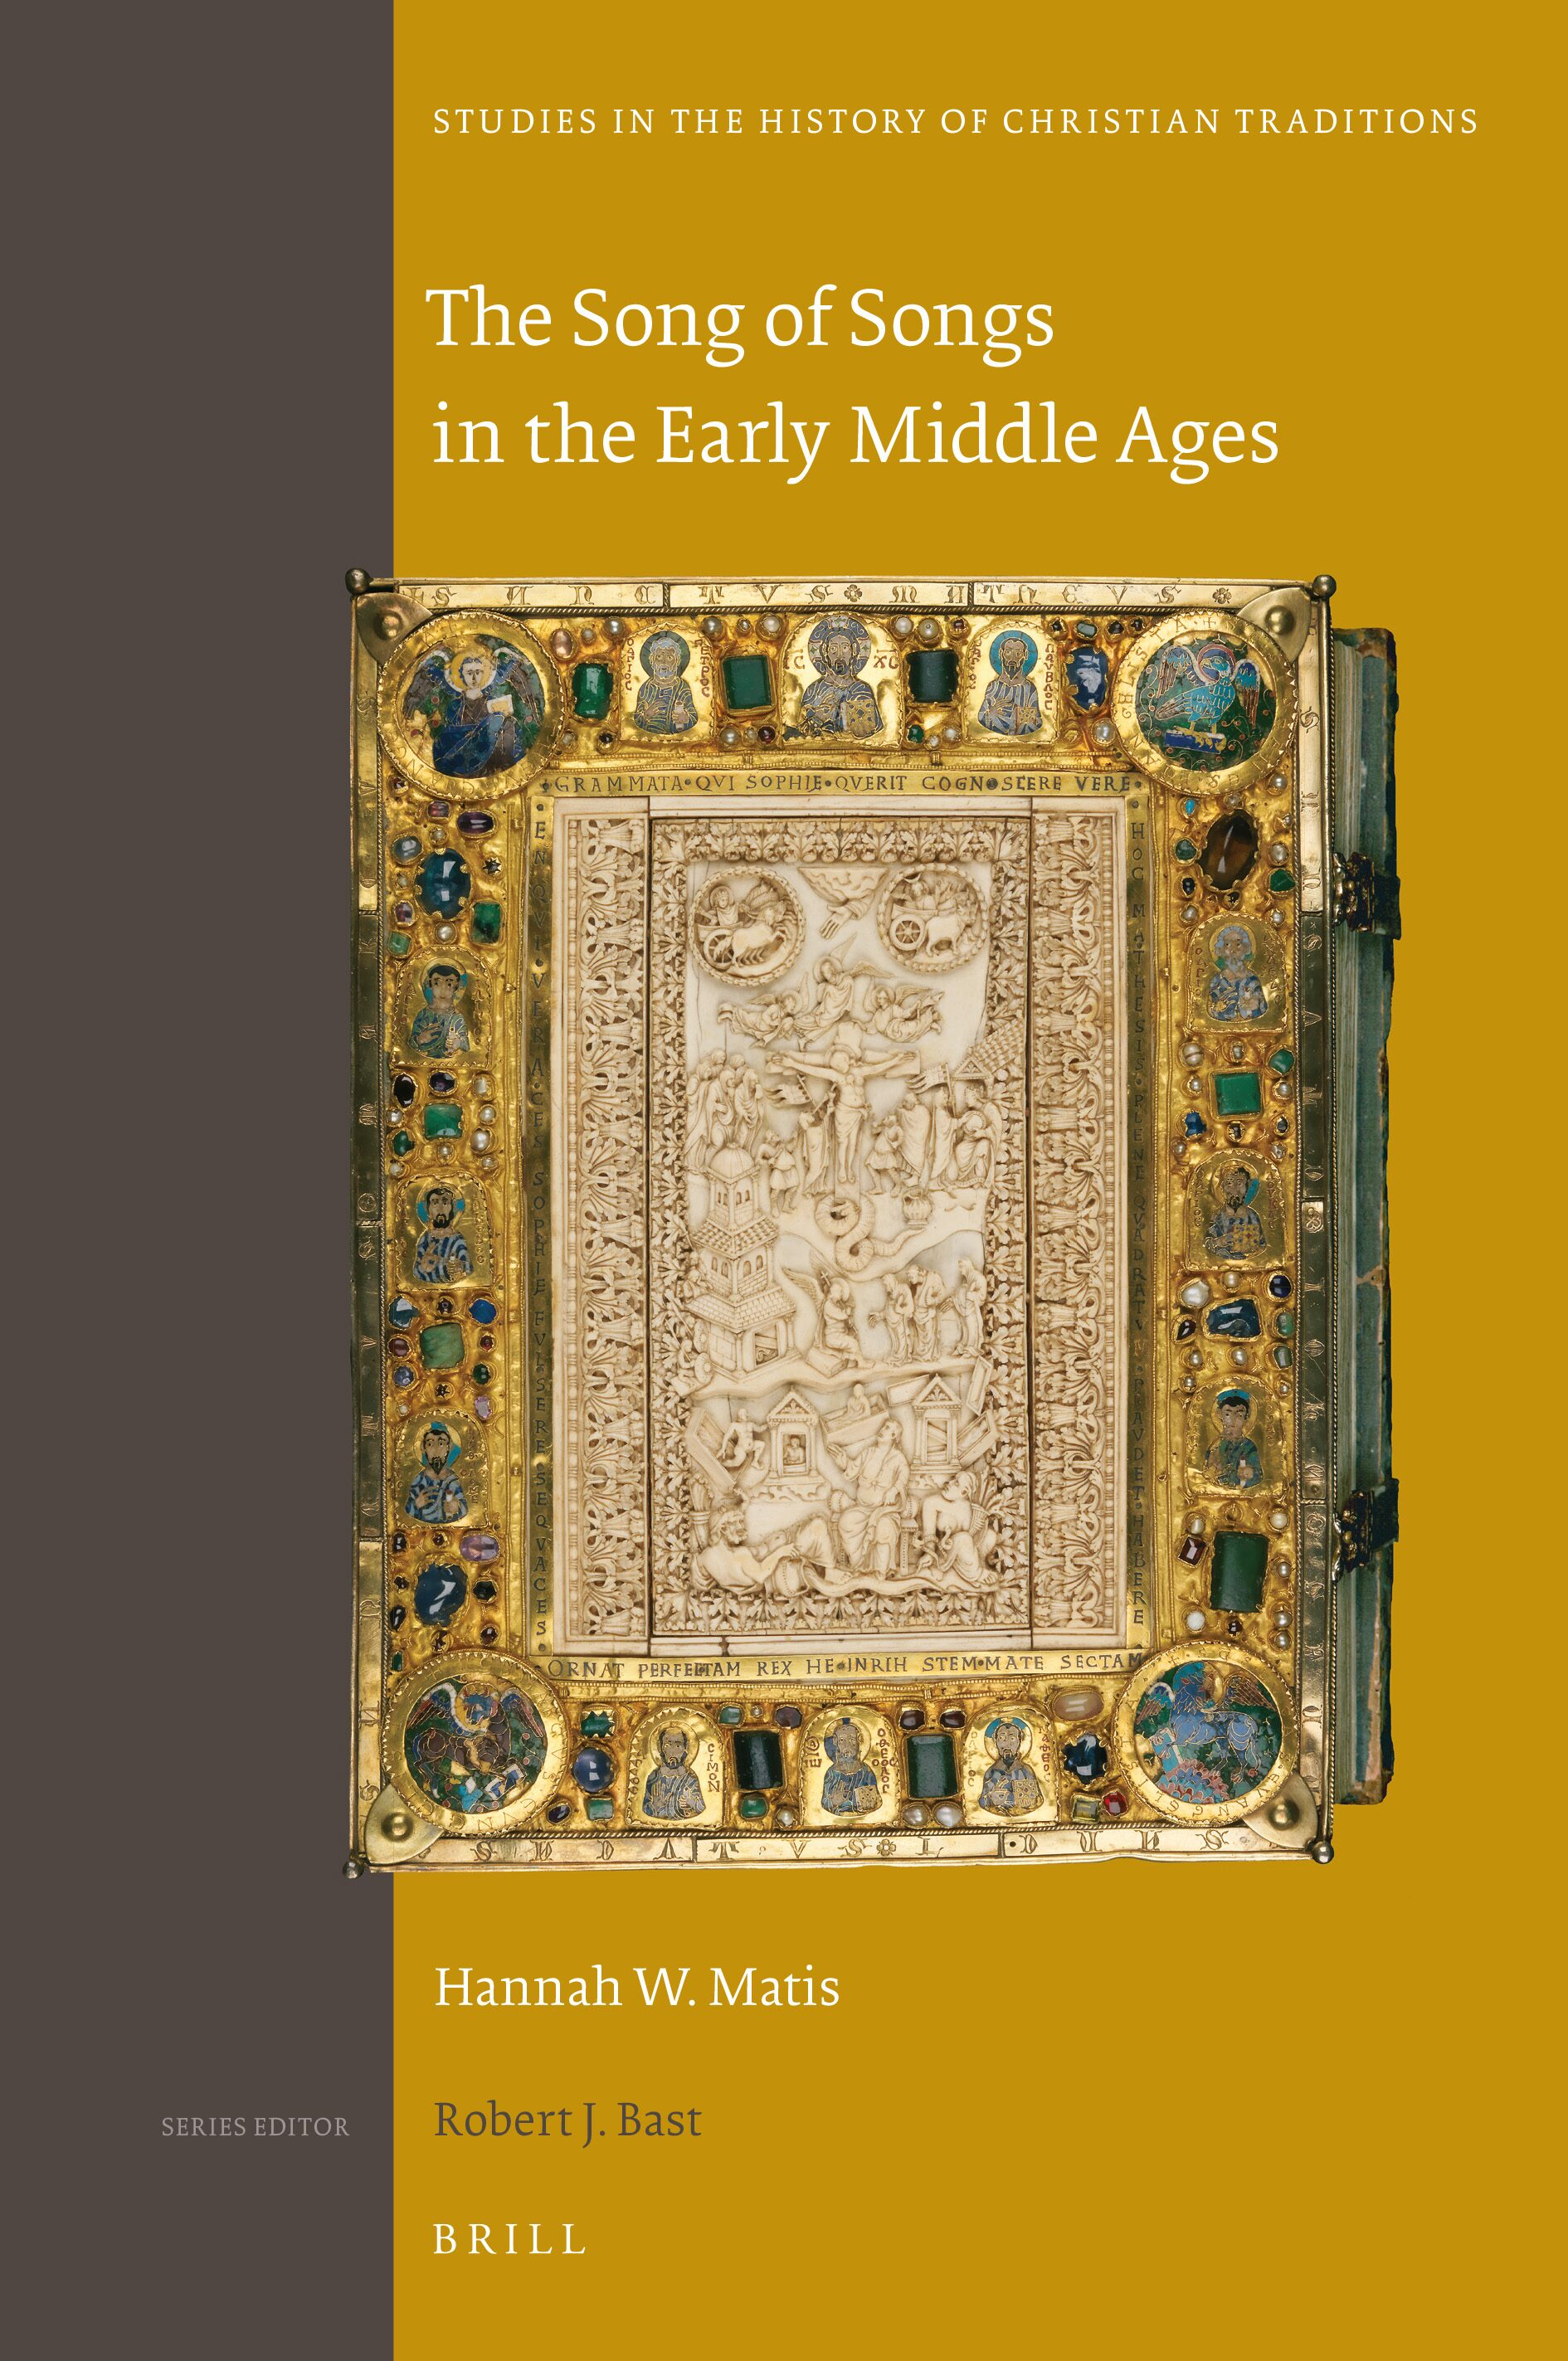 Bibliography In The Song Of Songs In The Early Middle Ages